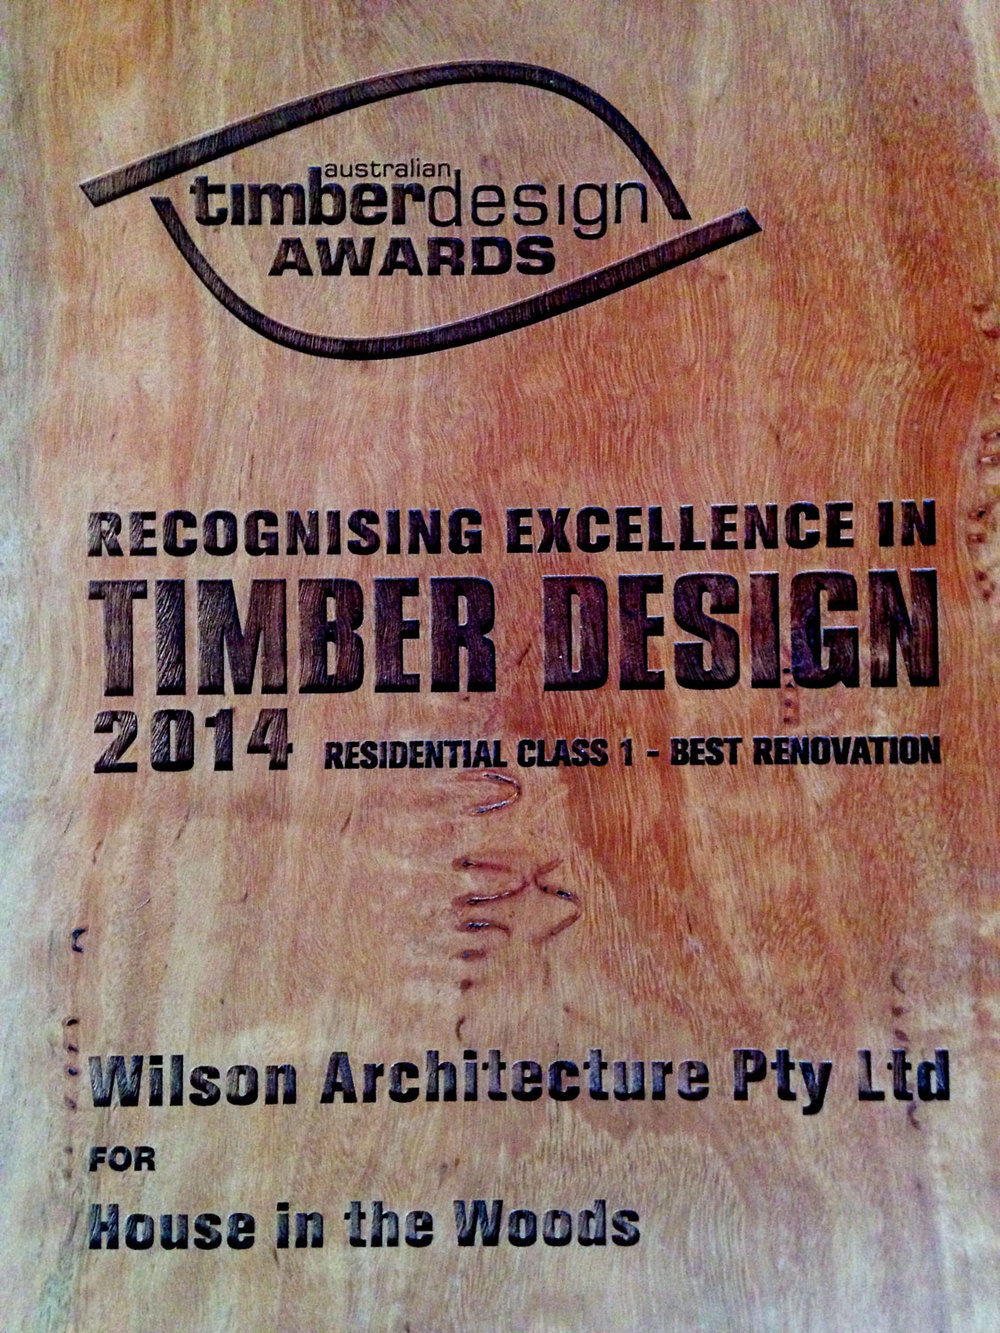 Timber-Design-Award-2014.jpg